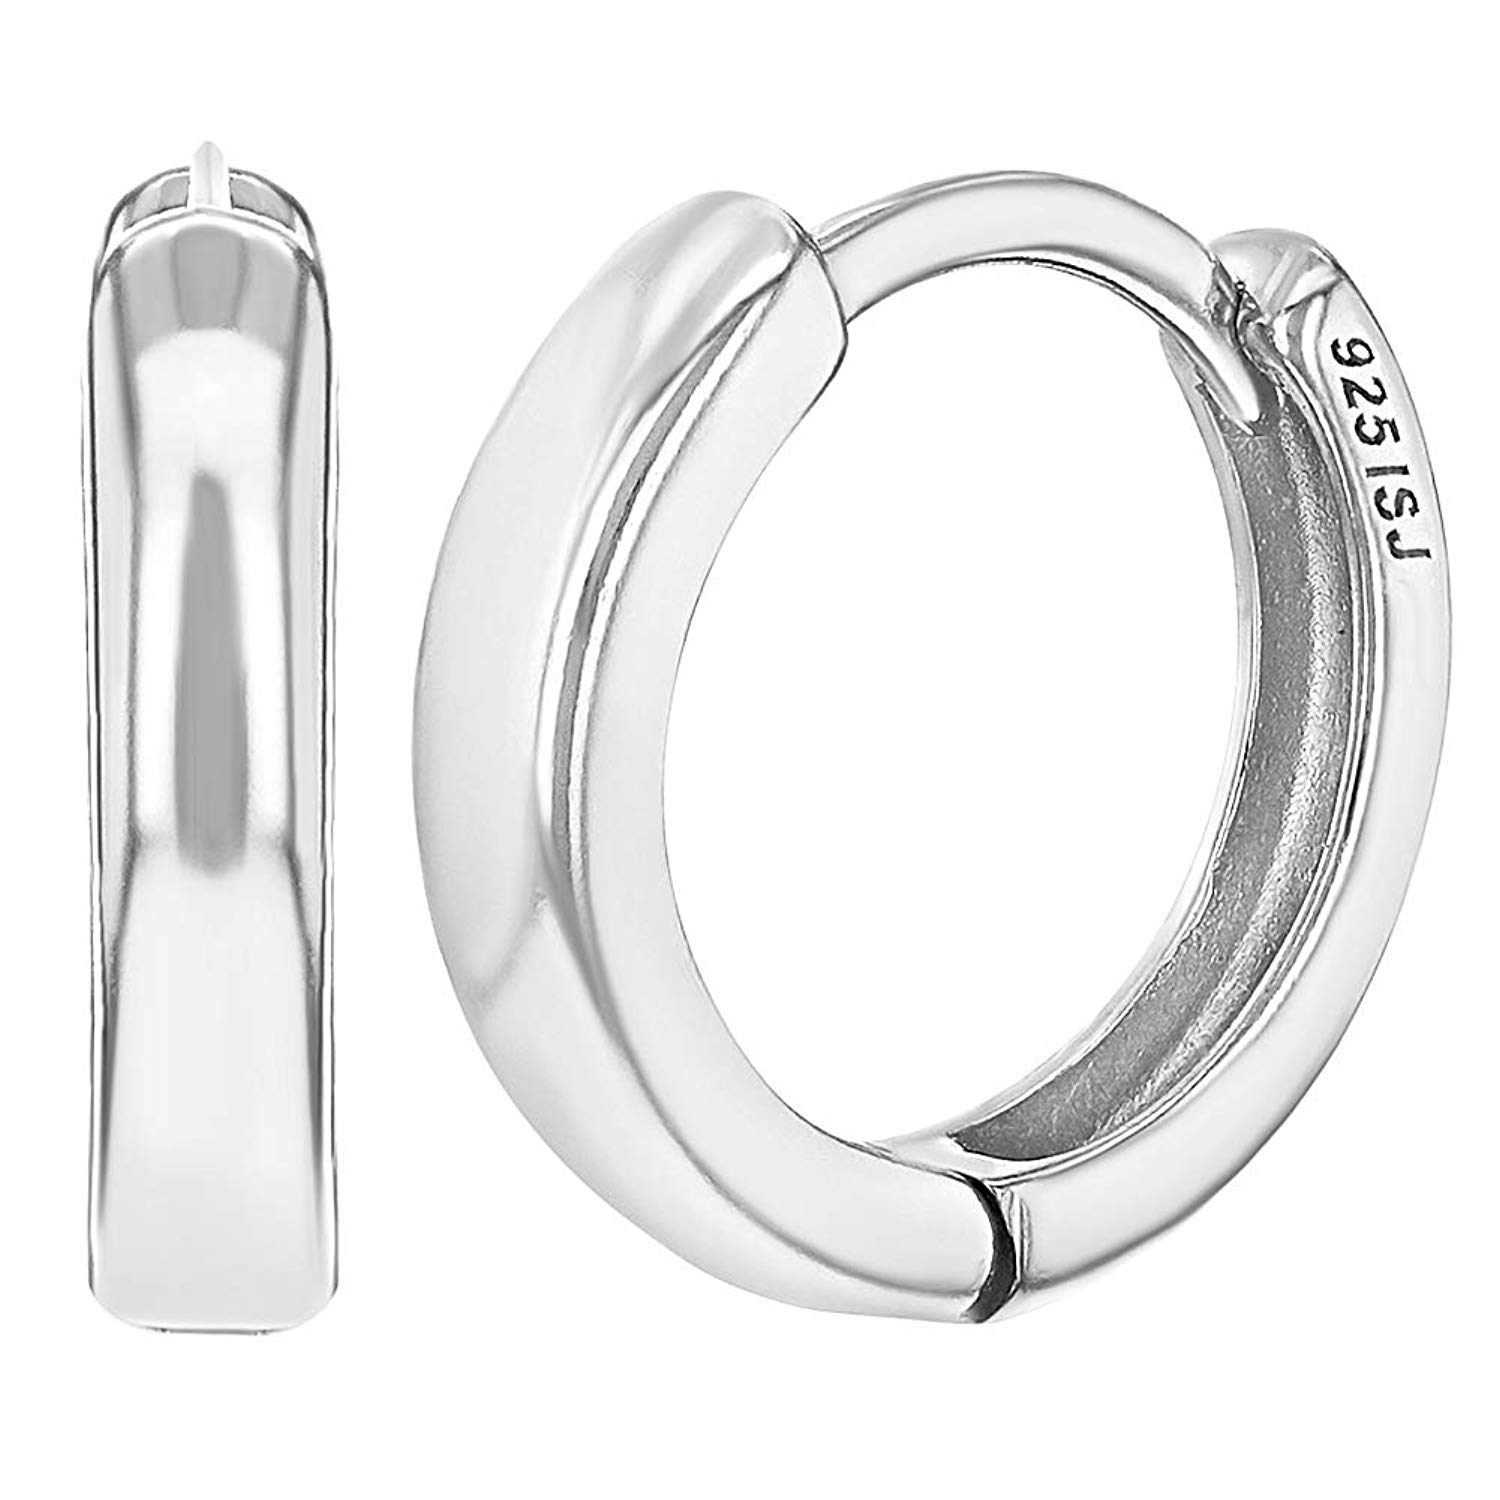 Sterling Silver 22mm Diameter Five Rectangular Cubic Zirconia Huggie Hoop Earrings